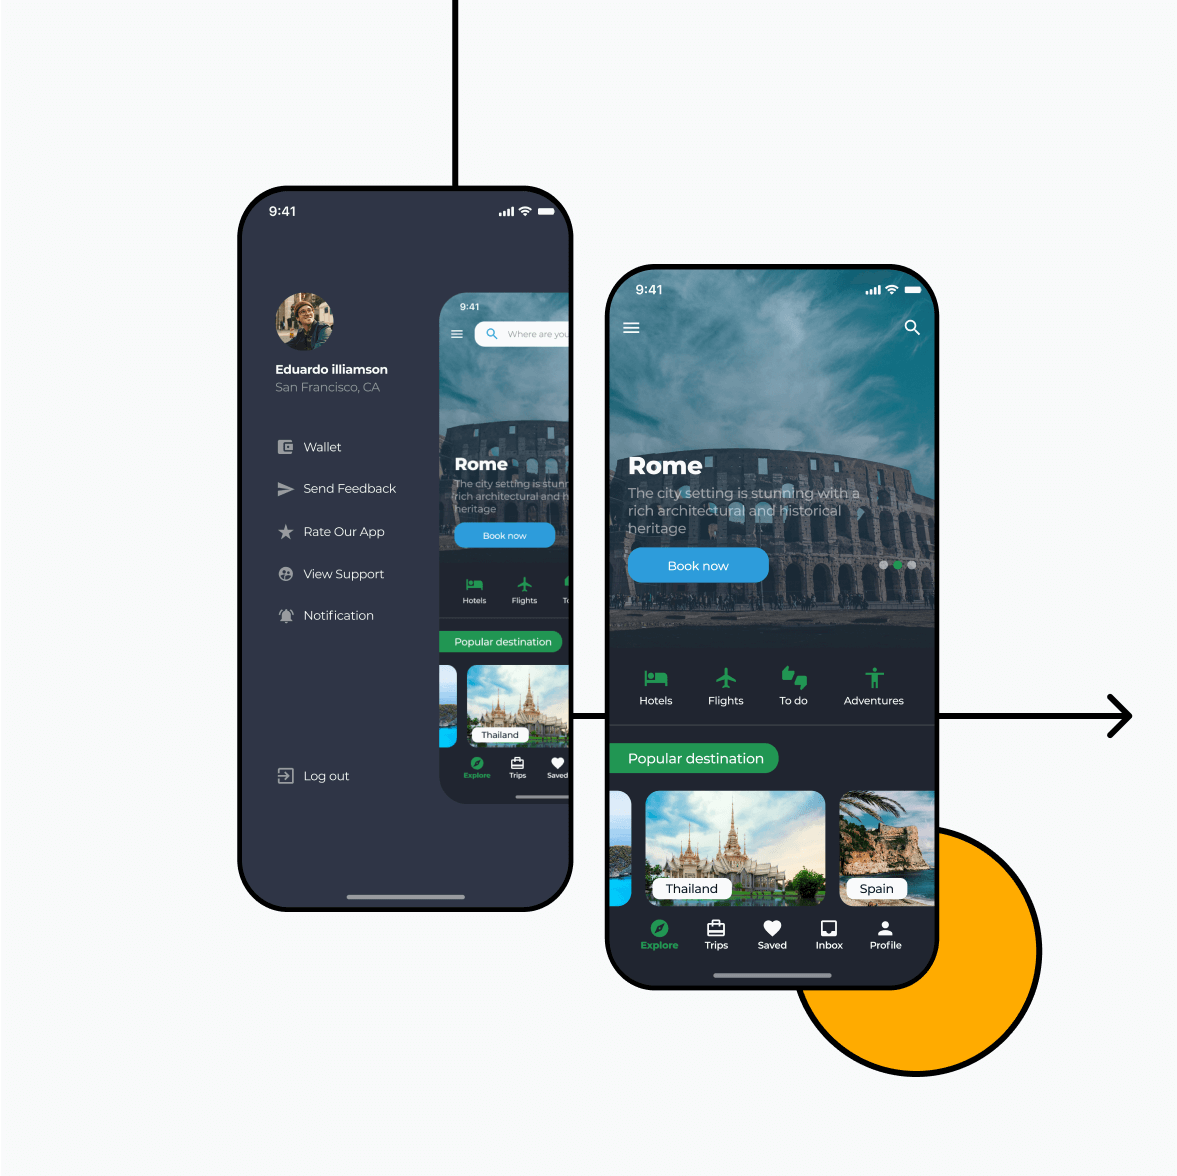 Itinerary app with locations